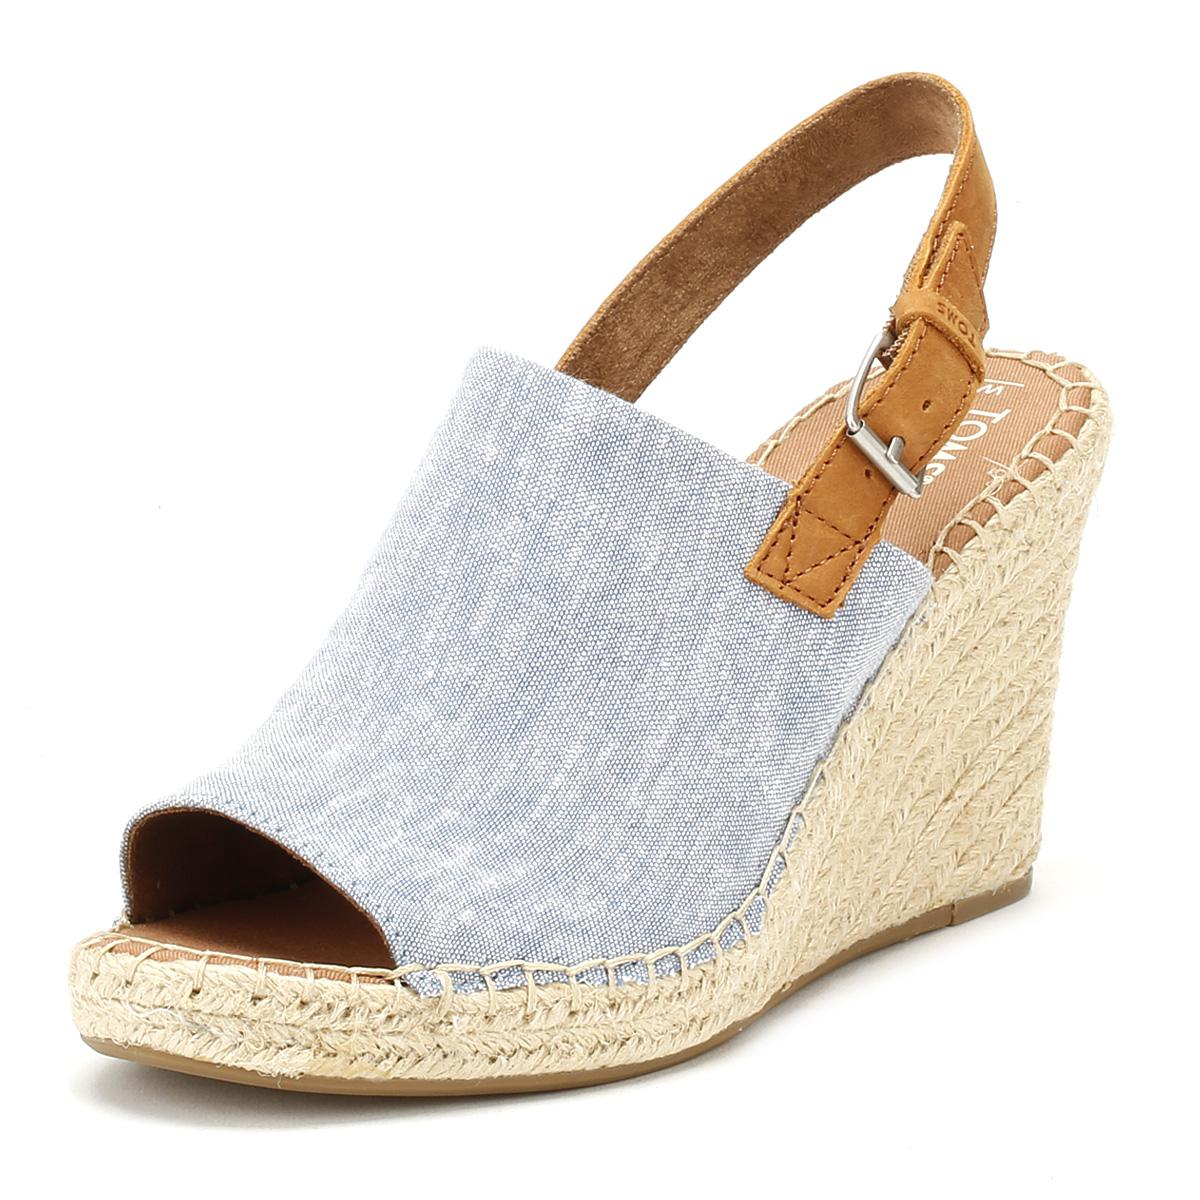 e56ad216c5e Lyst - TOMS Womens Blue Chambray Monica Wedges in Blue - Save 14%